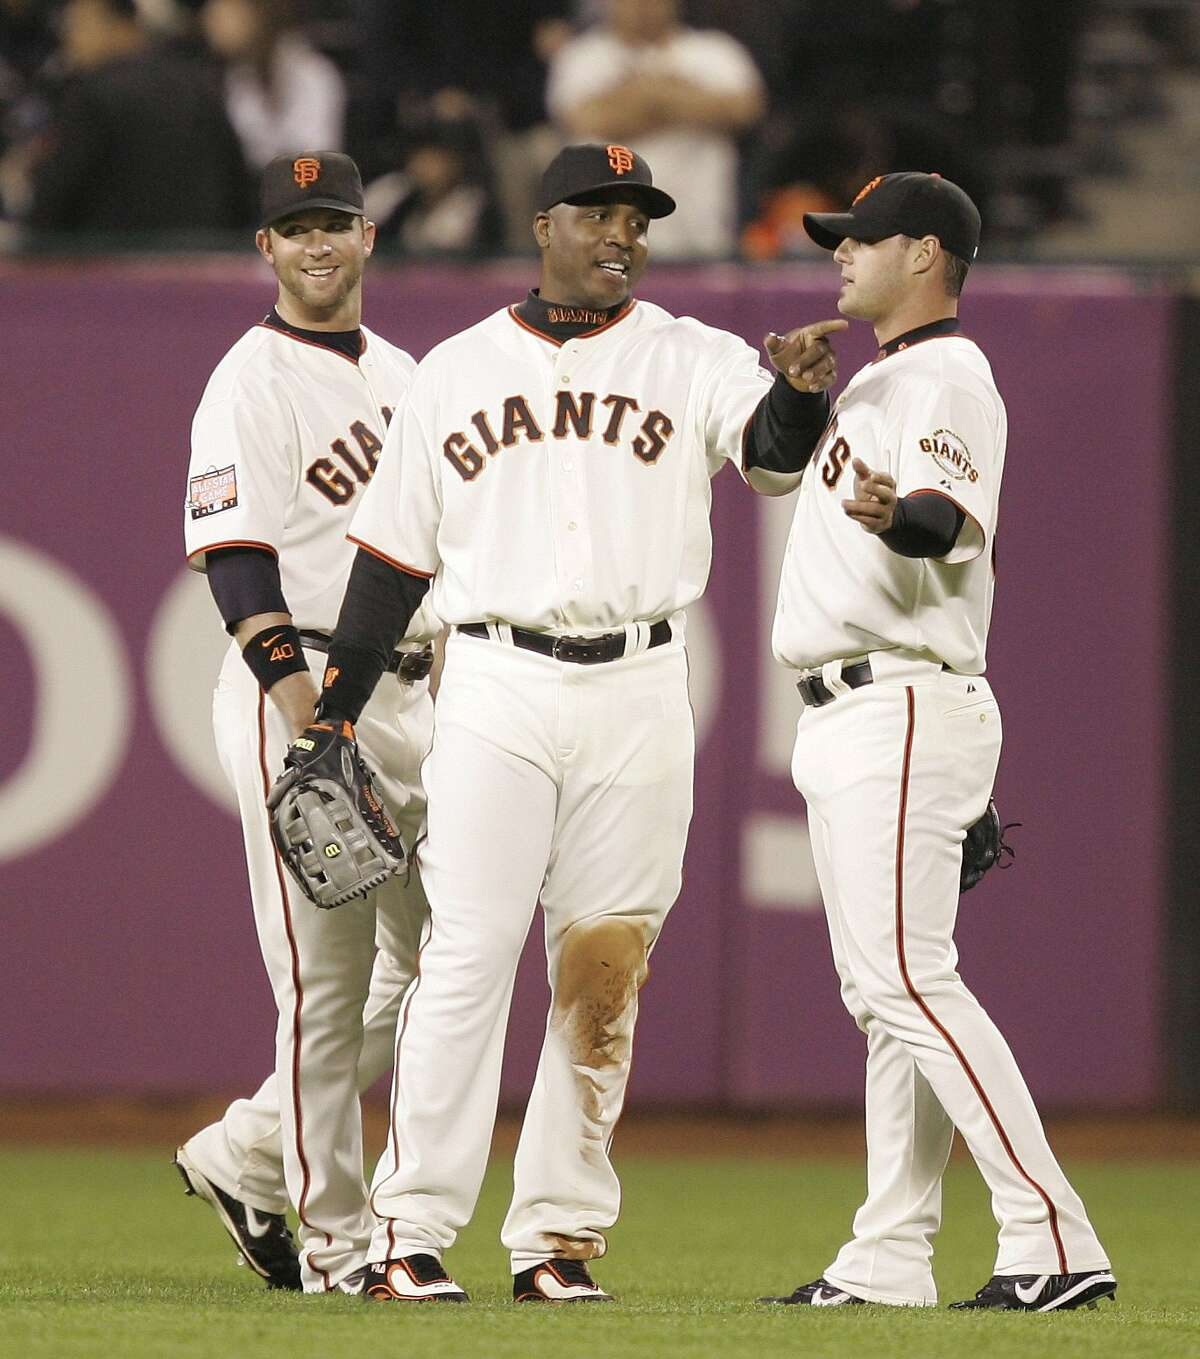 San Francisco Giants pitcher Noah Lowry, right, gets directions from teammate Barry Bonds, center, as Daniel Ortmeier, left, looks on in the 10th inning of a baseball game in San Francisco, Friday, June 8, 2007. Lowry had to take the left field position after the Giants were left out of position players following an injury to catcher Eliezer Alfonzo. (AP Photo/Marcio Jose Sanchez) Ran on: 06-09-2007 Barry Bonds tells Noah Lowry (right) where to go, while Daniel Ortmeier (left), who had plenty of ground to cover, smiles.